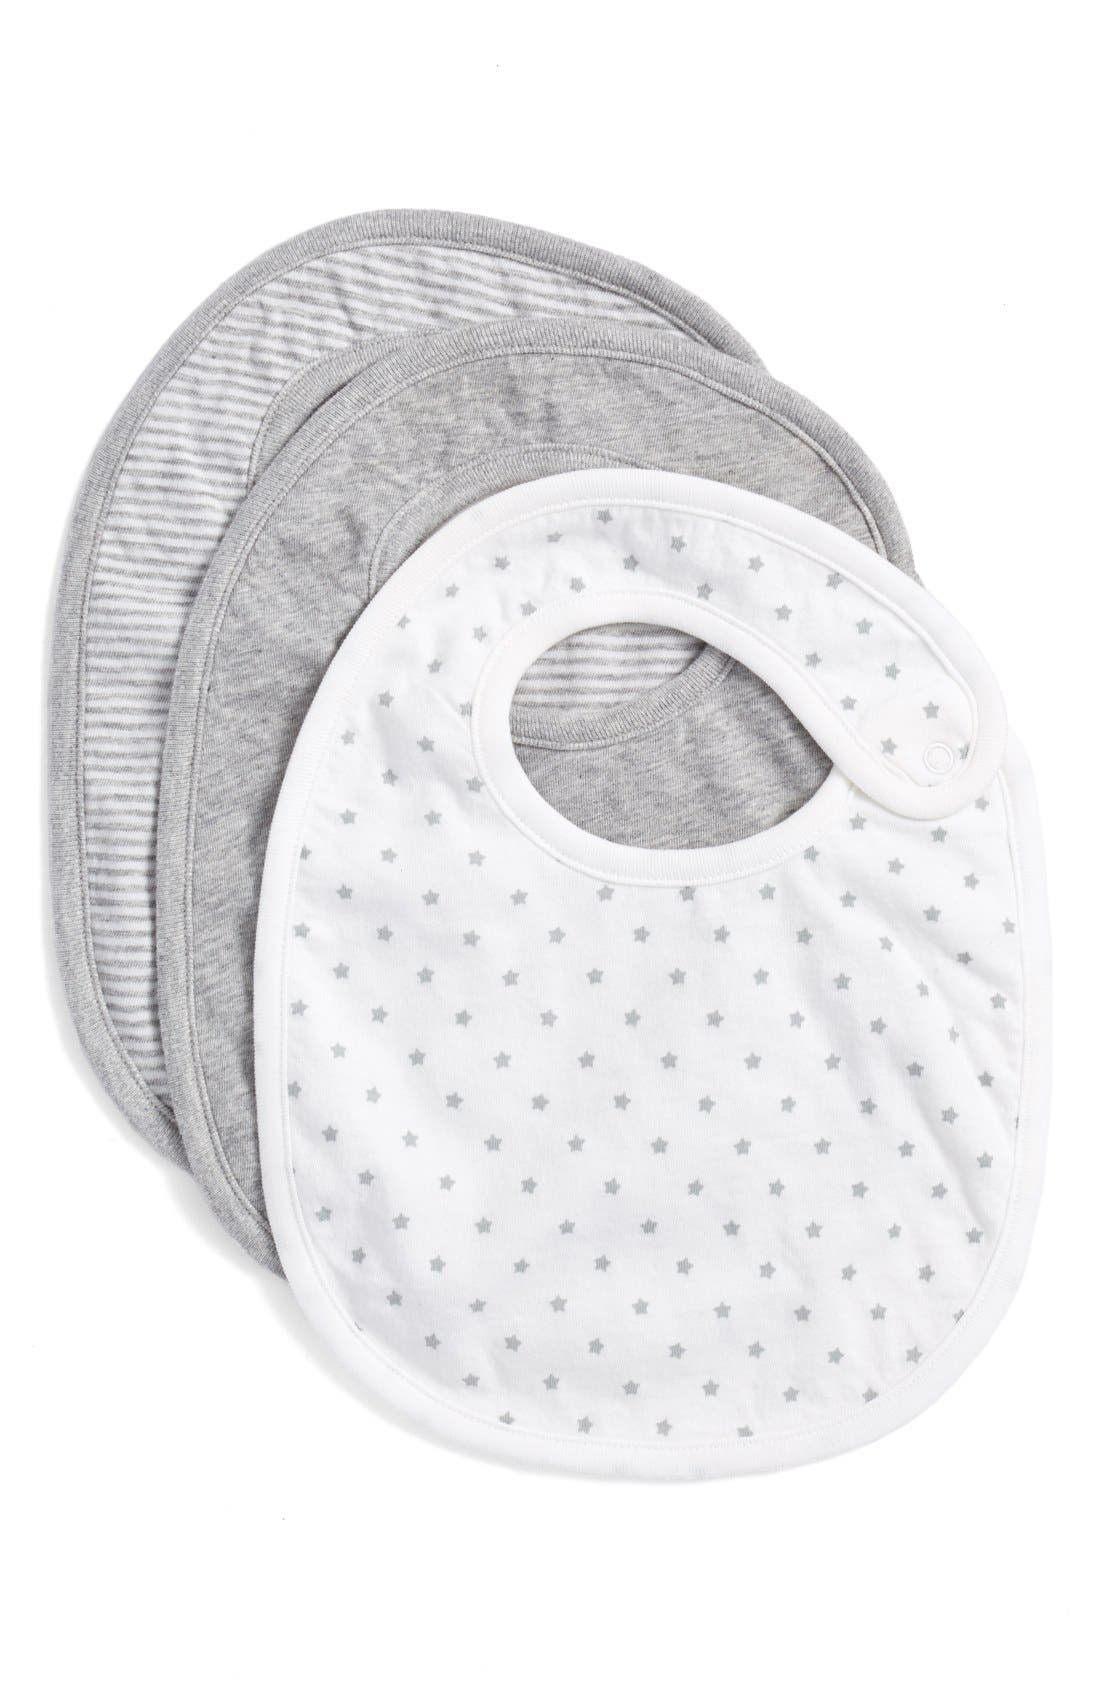 Snap Bibs,                         Main,                         color, GREY ASH HEATHER